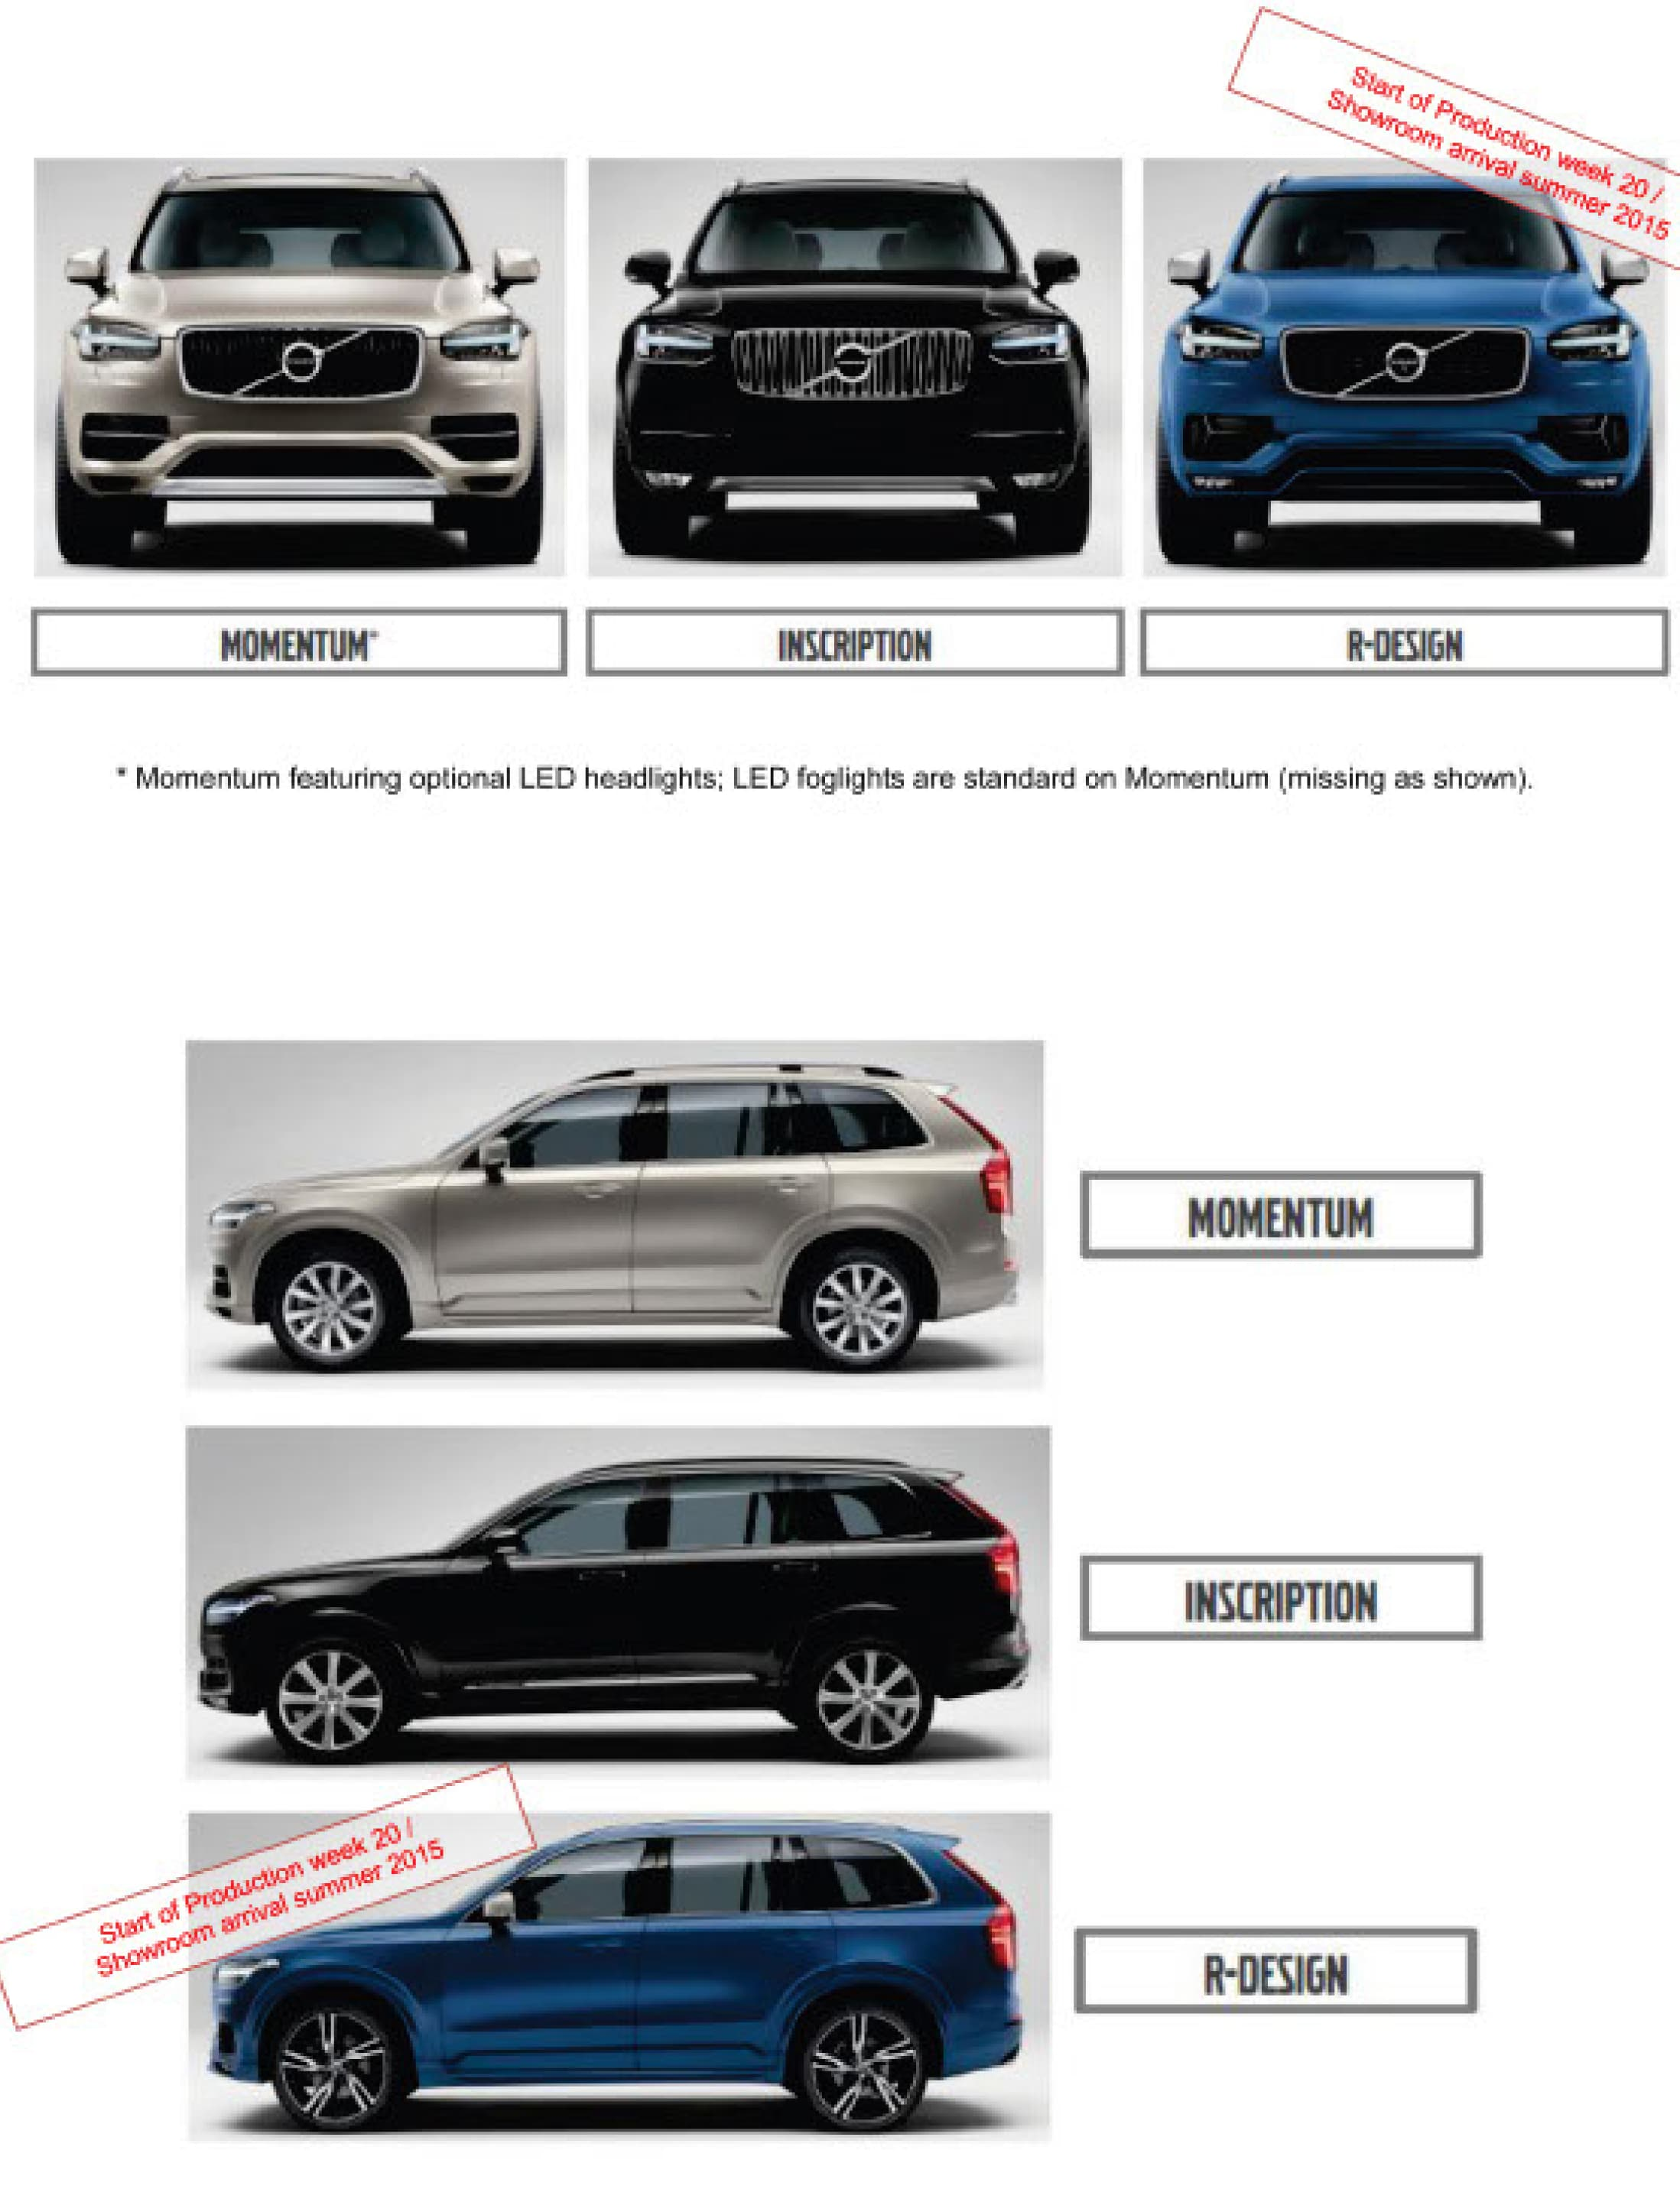 lease onyx volvo deals black nj large research premier composite e groovecar drive metallic awd wagon